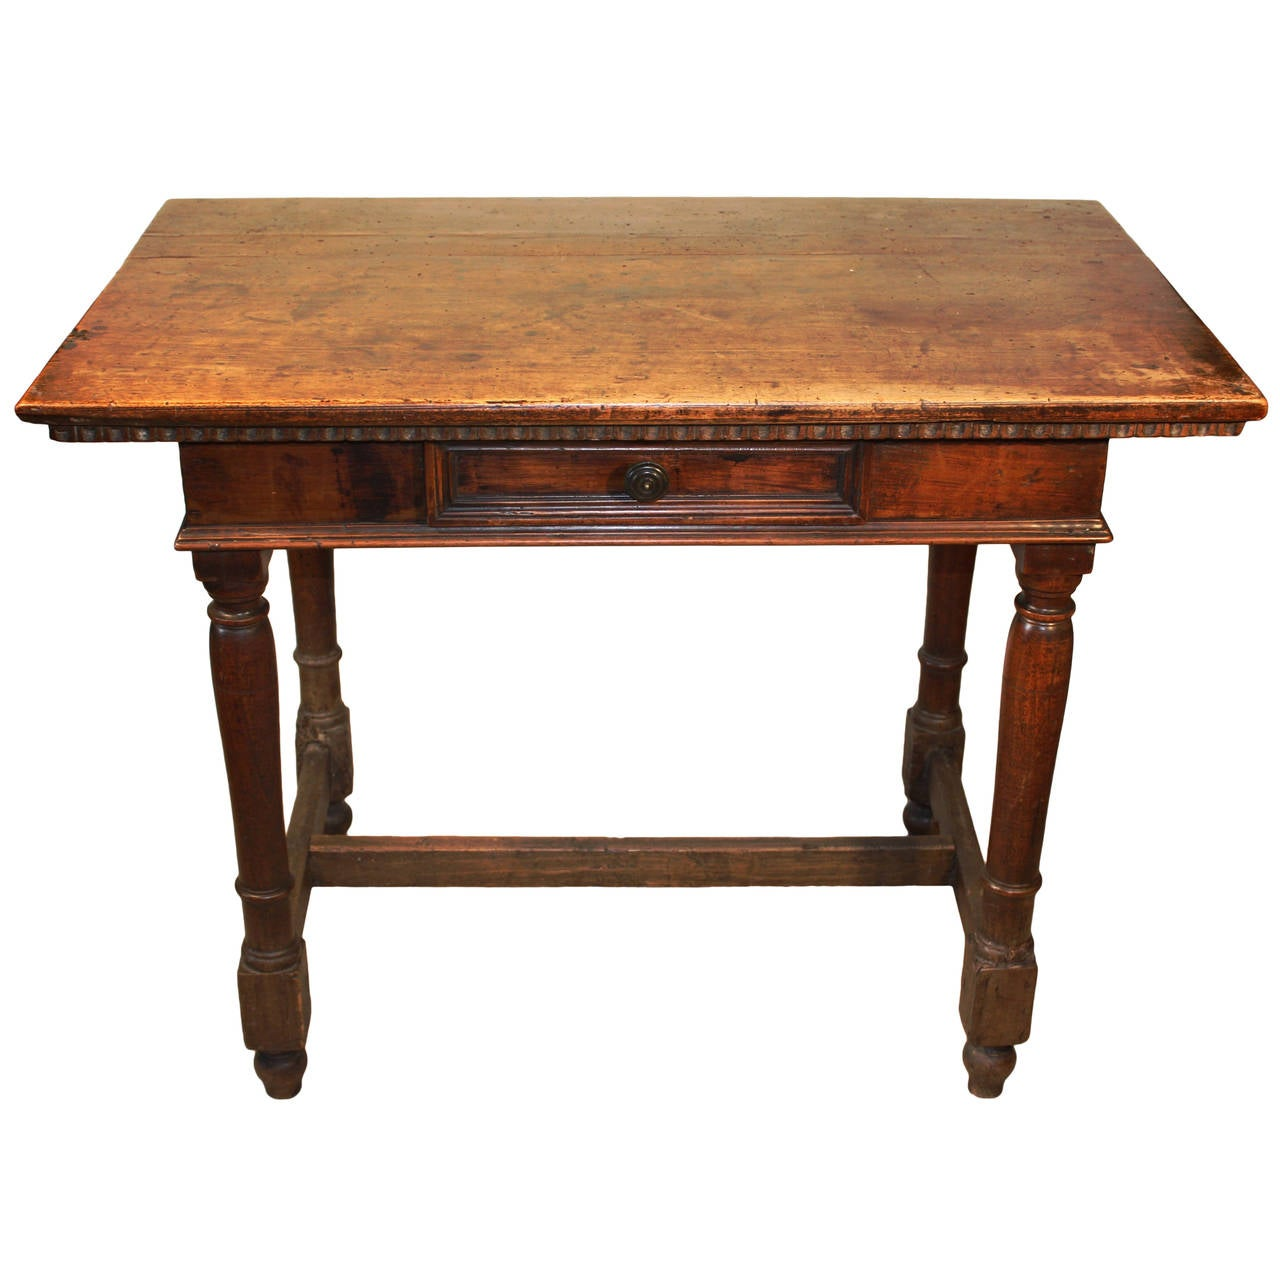 18th century rustic continental side table in walnut at 1stdibs - Archives departementales 33 tables decennales ...